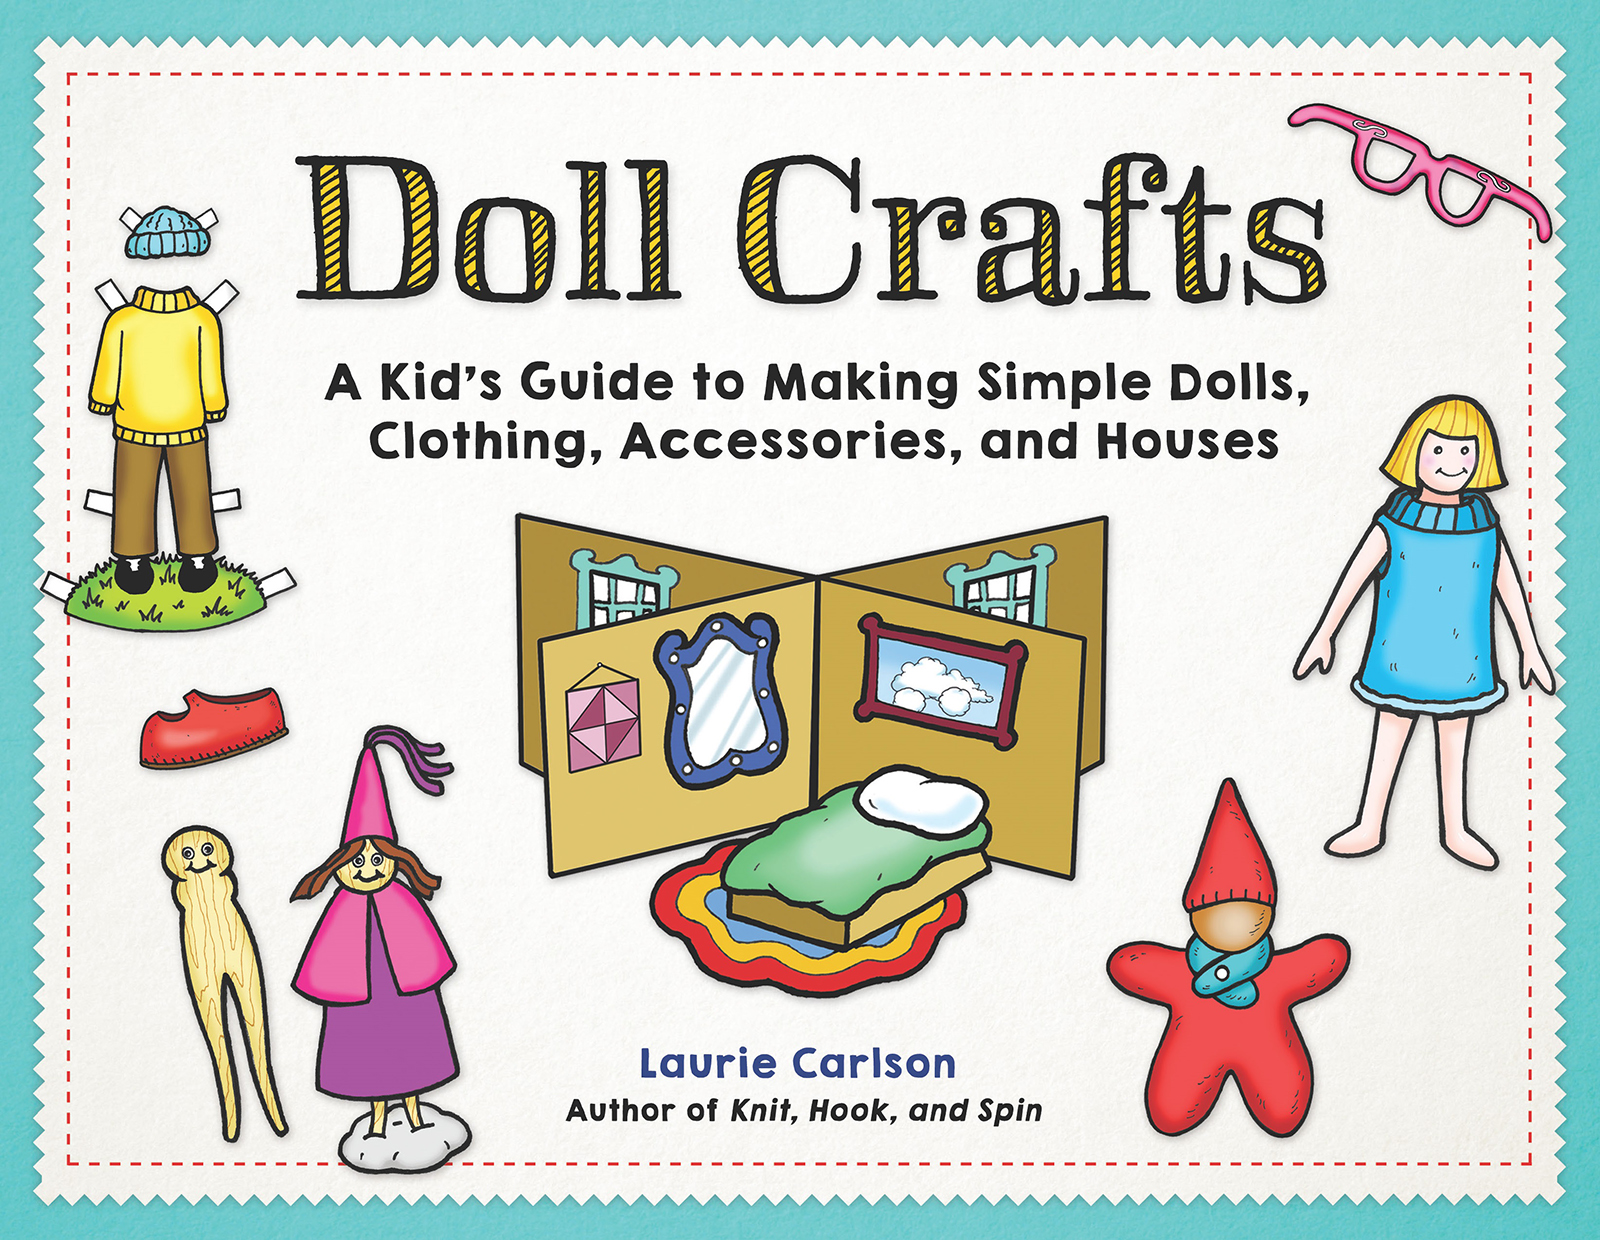 Doll Crafts A Kid's Guide to Making Simple Dolls, Clothing, Accessories, and Houses